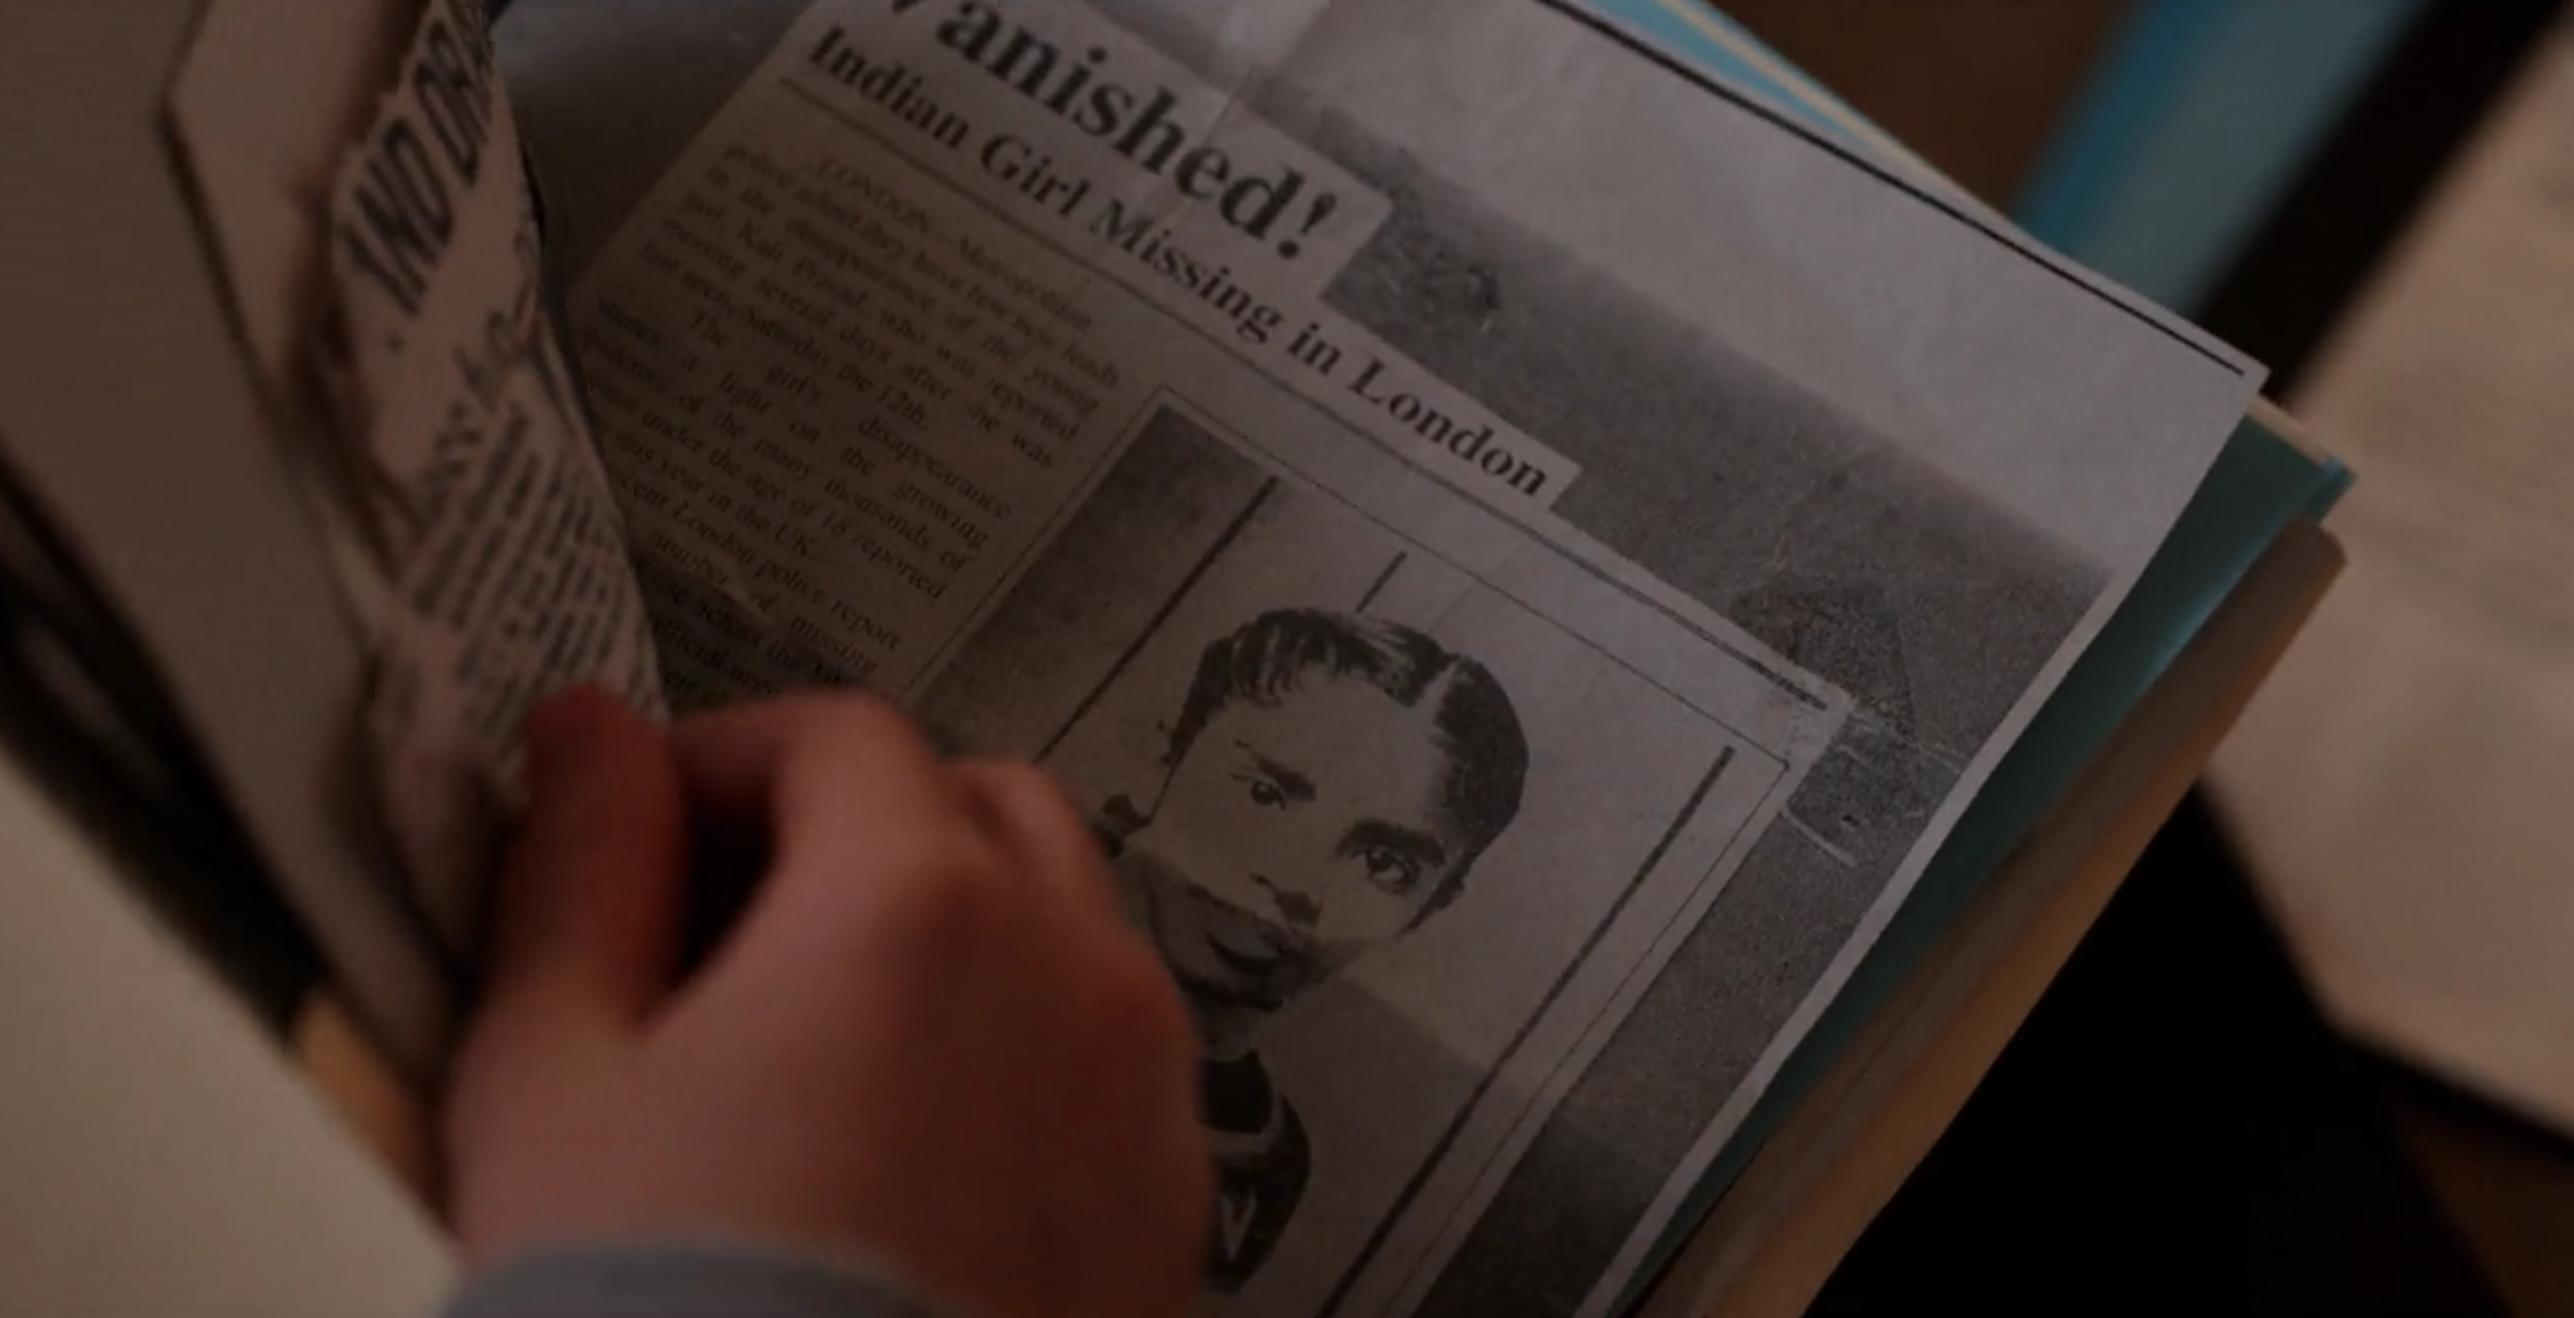 Kali Stranger Things Newspaper Clipping